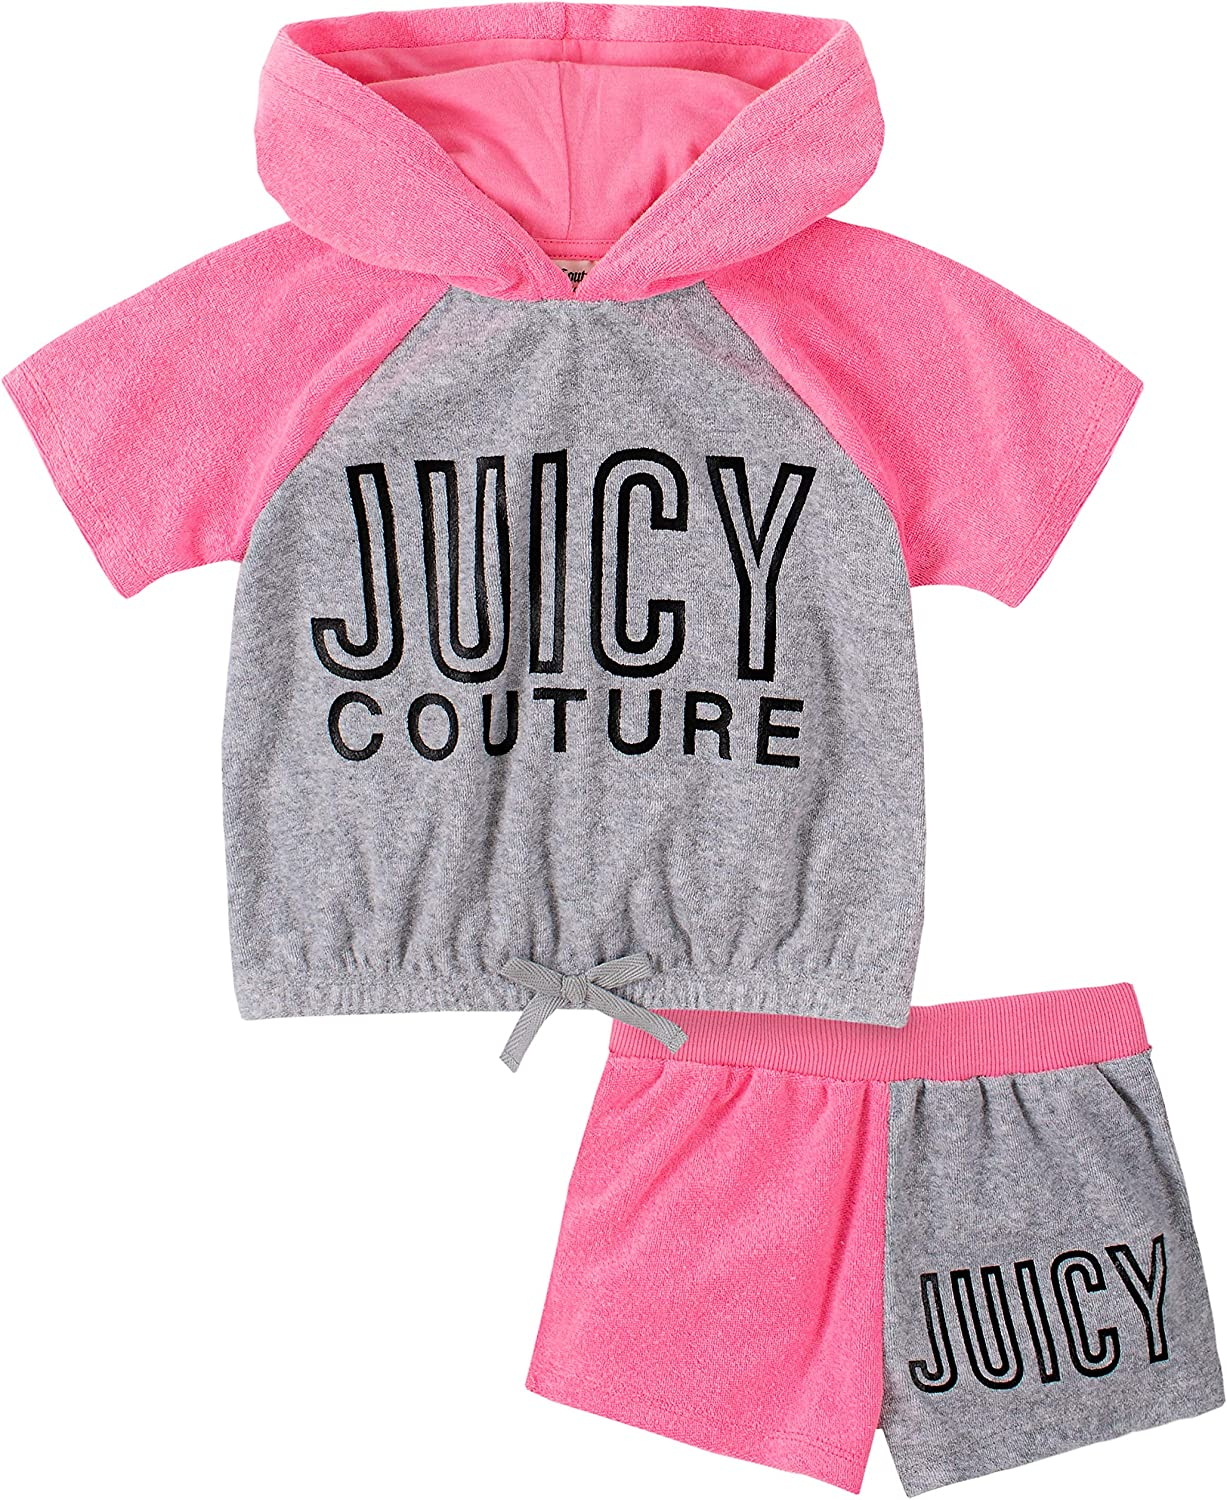 Juicy Couture Baby Girls' 2 Pieces Hoody Shorts Set